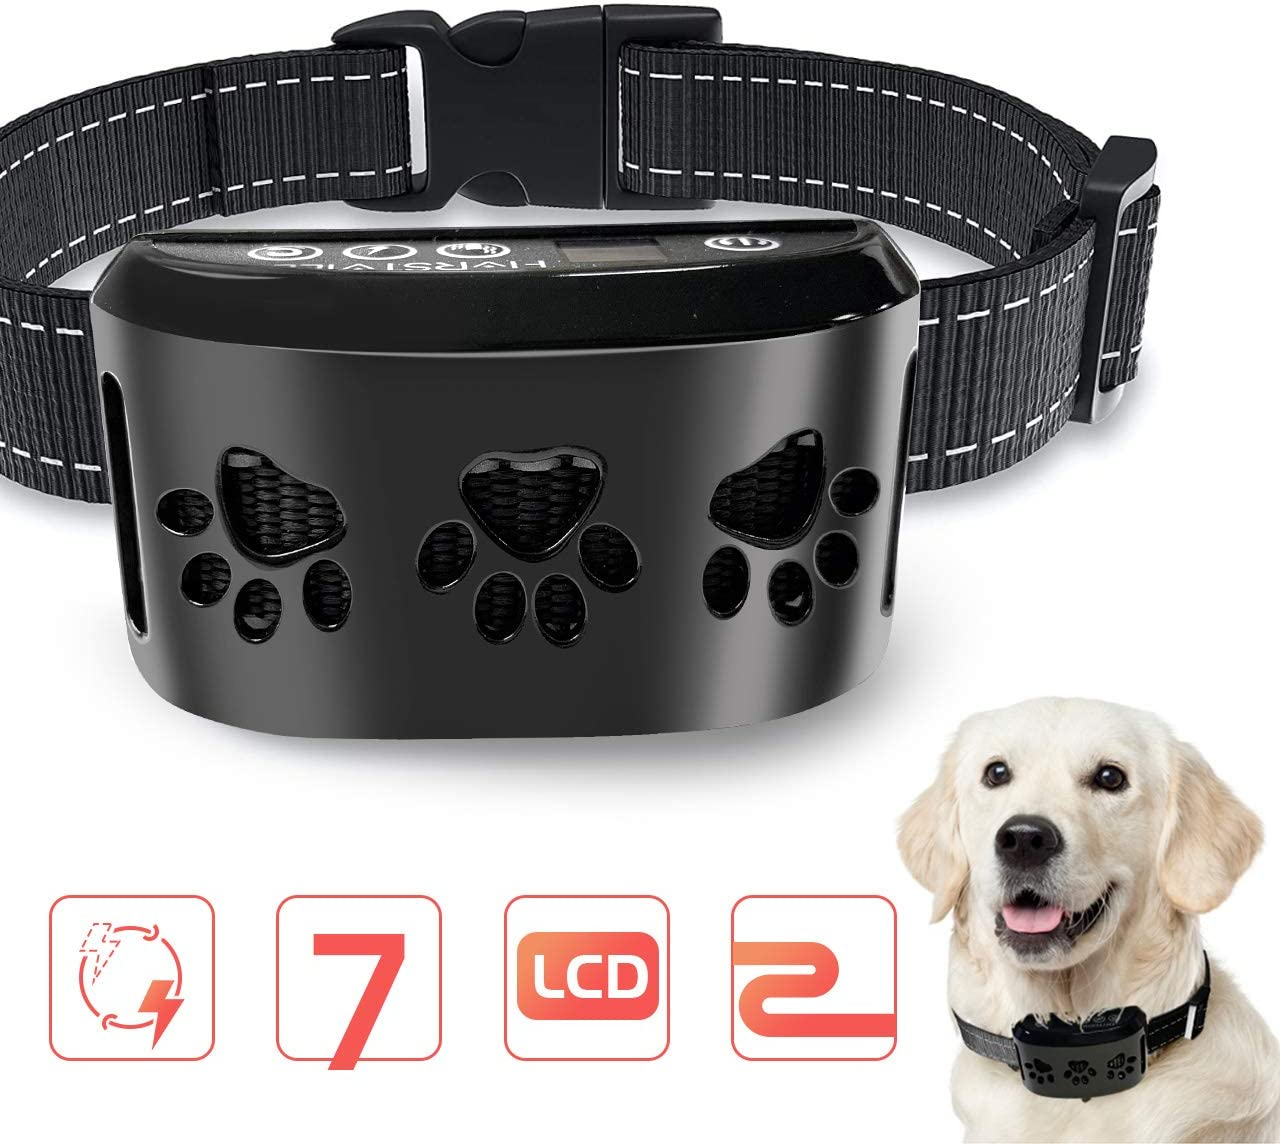 HVRSTVILL Advanced Dog Bark Collar for Small Medium Large Dog with Beep Vibration and Harmless Shock – Rechargeable Anti Bark Training Collar, Safely and Humane Dog Shock Collar, Adjustable Belt